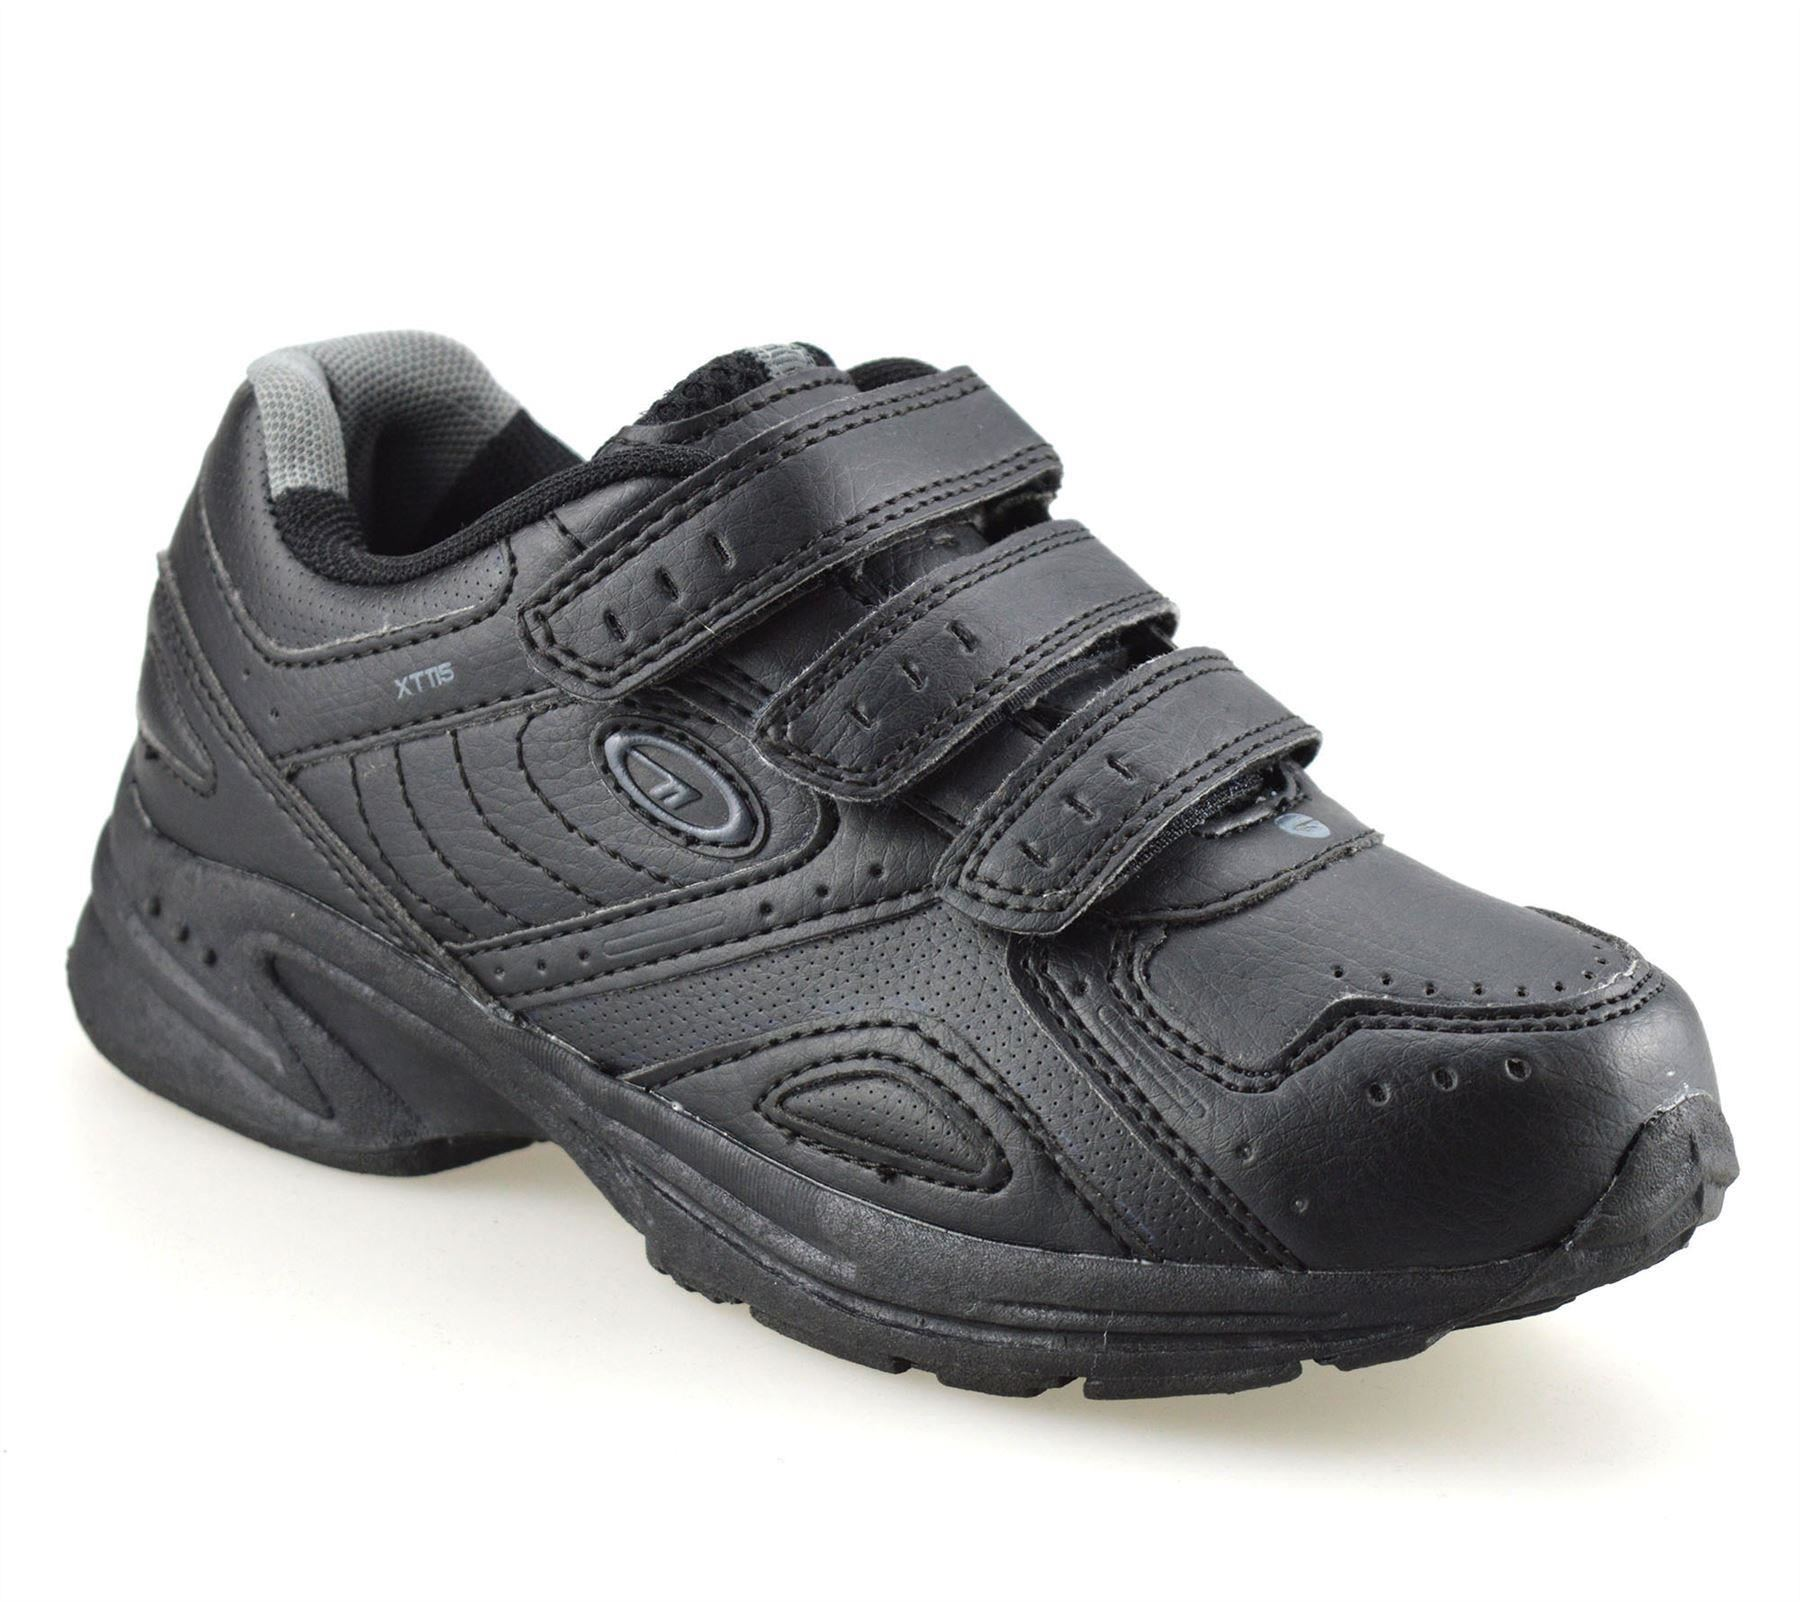 Boys-Kids-New-Hi-Tec-Smart-Casual-Touch-Strap-Back-To-School-Trainers-Shoes-Size thumbnail 9